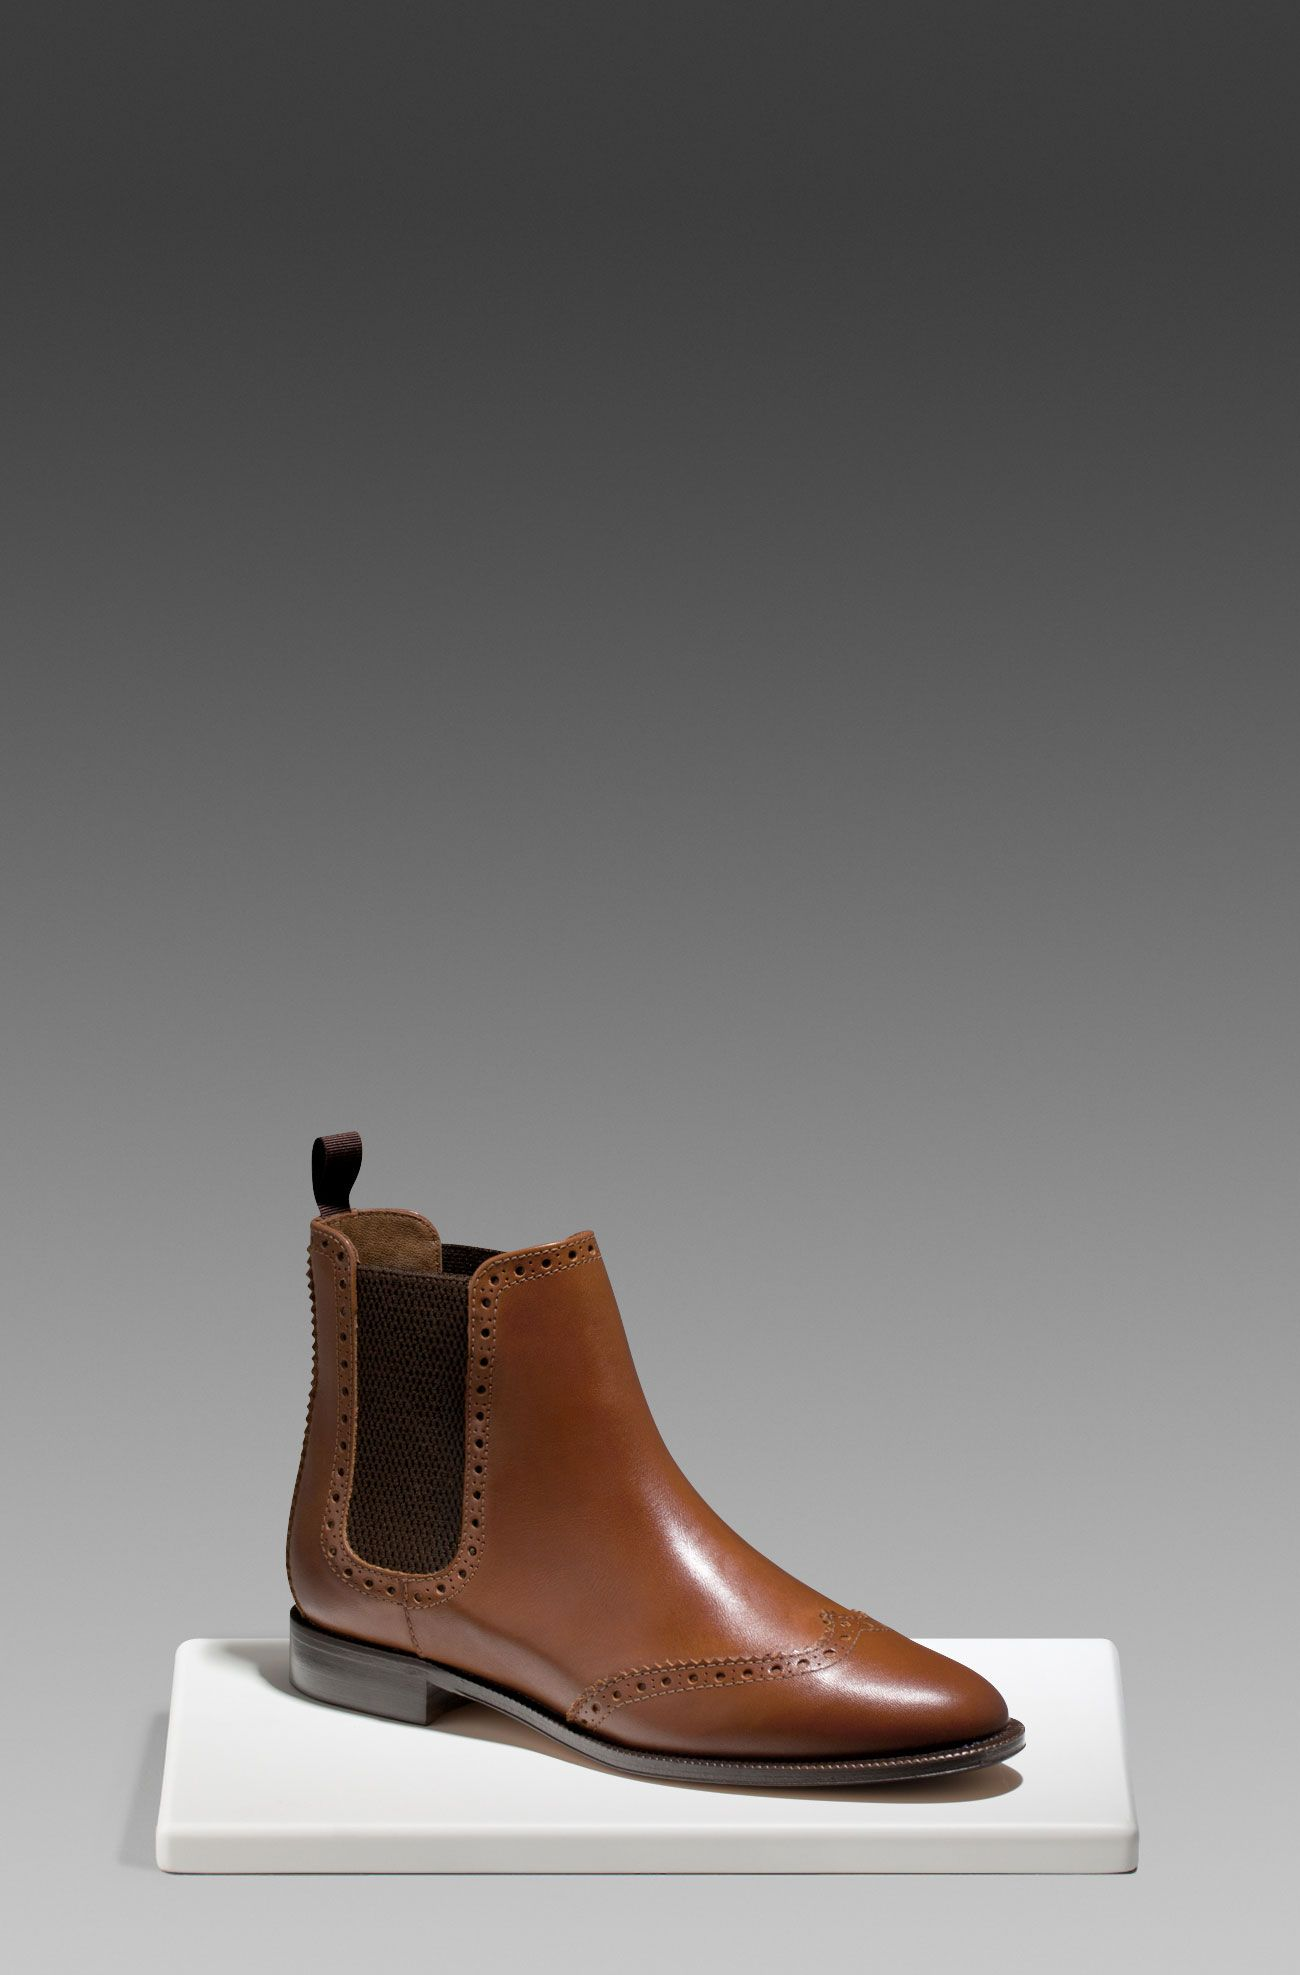 b1eb4fe1ca1 LEATHER ELASTIC ANKLE BOOTS - Shoes - WOMEN - Greece Massimo Dutti ...